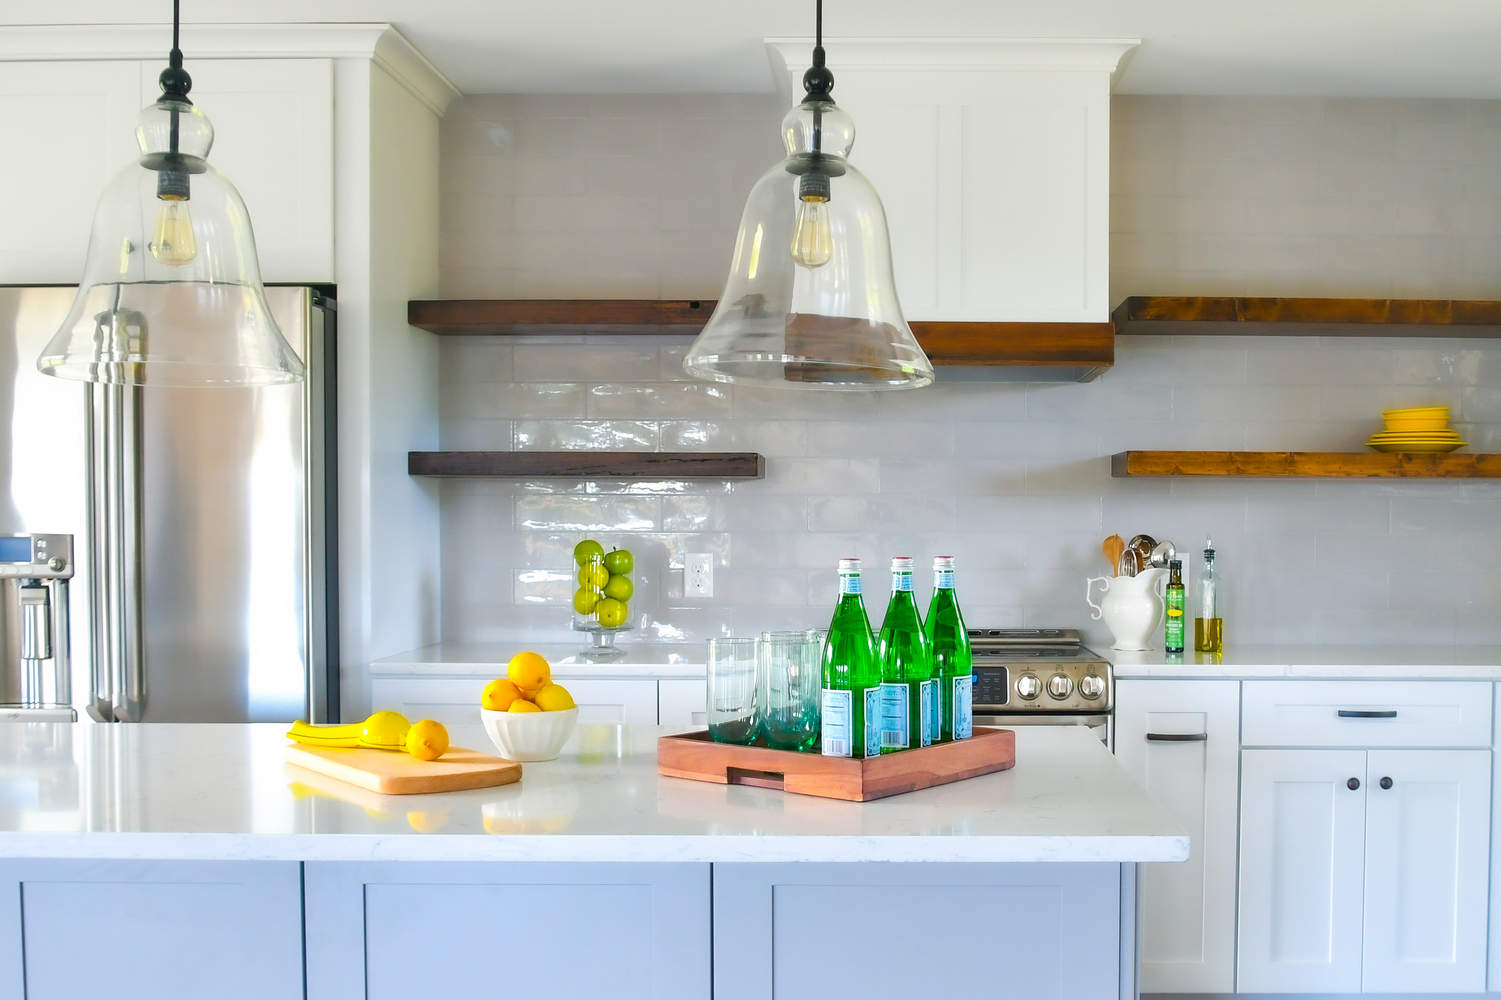 kitchen-in-a-new-home-with-open-concept-layout-whi-BSCXAHM